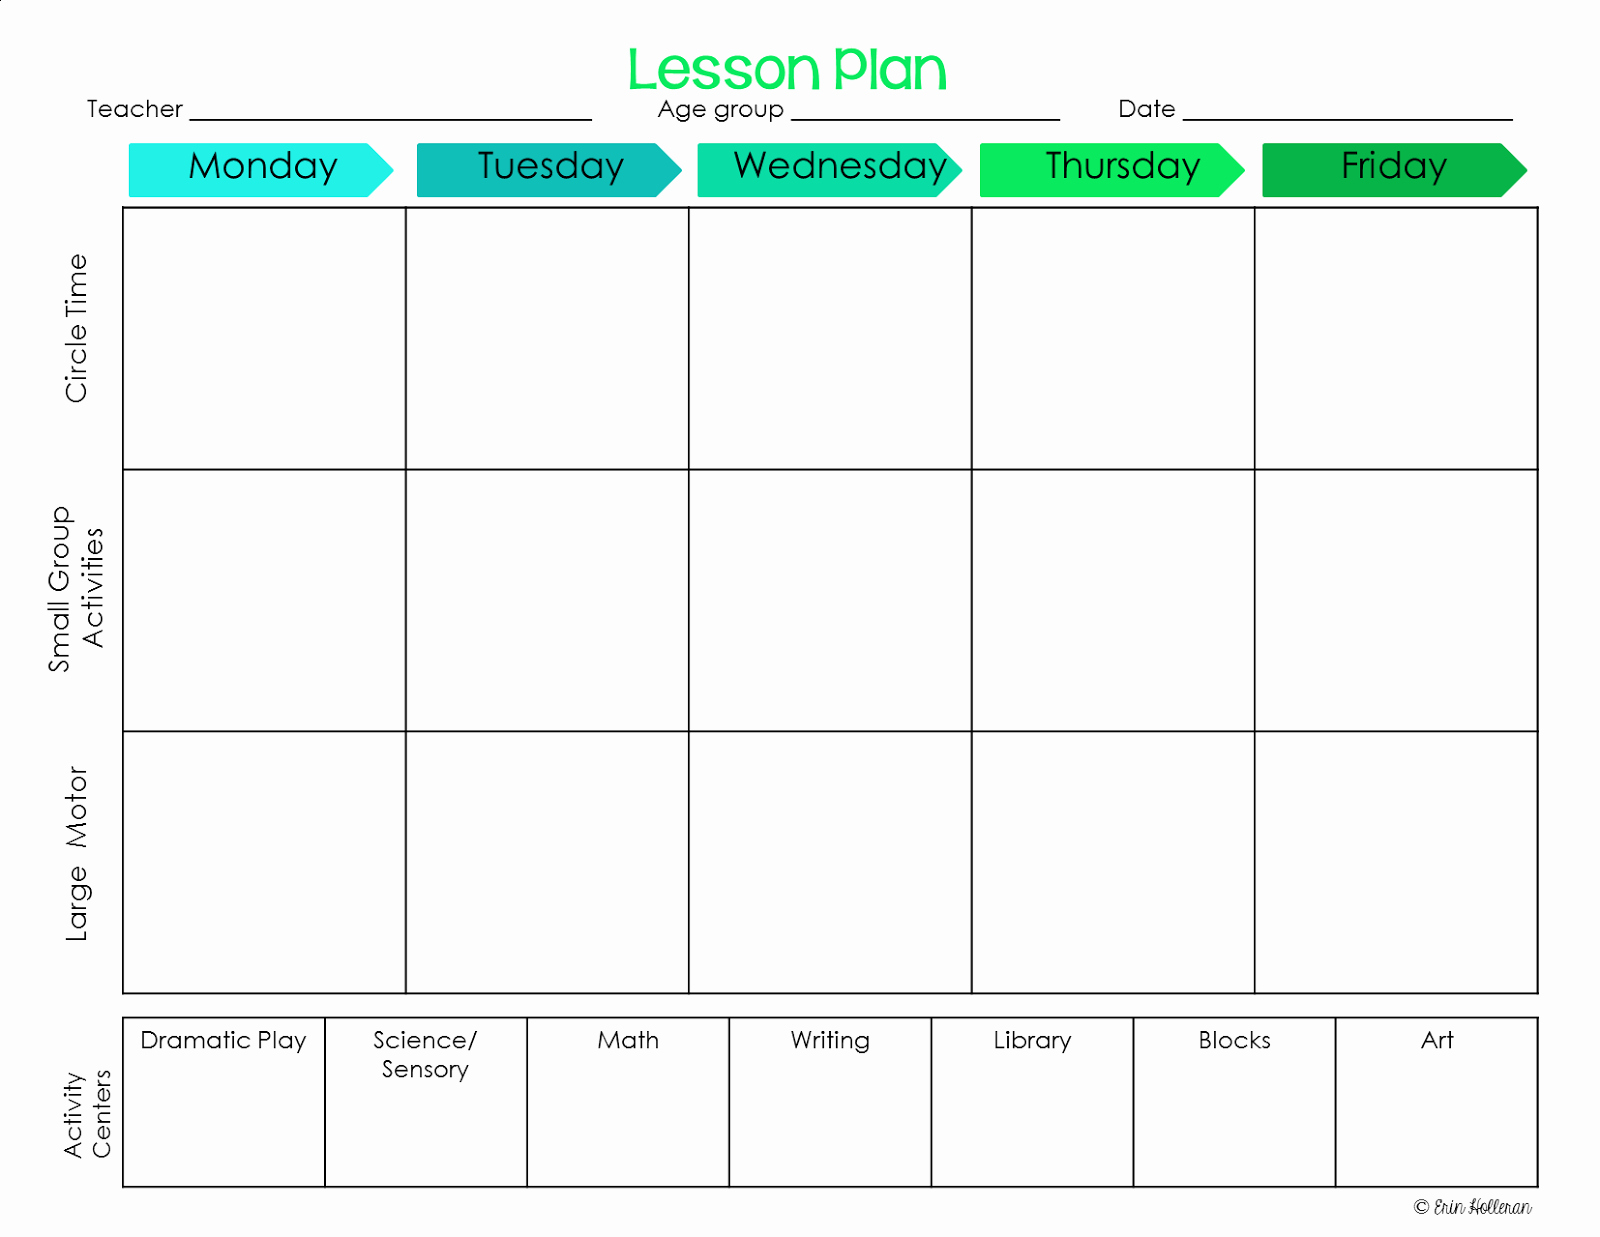 Standards Based Lesson Plan Template Awesome All About Teaching Preschool Great Ideas for Preschool Activities Standards Based Curriculum